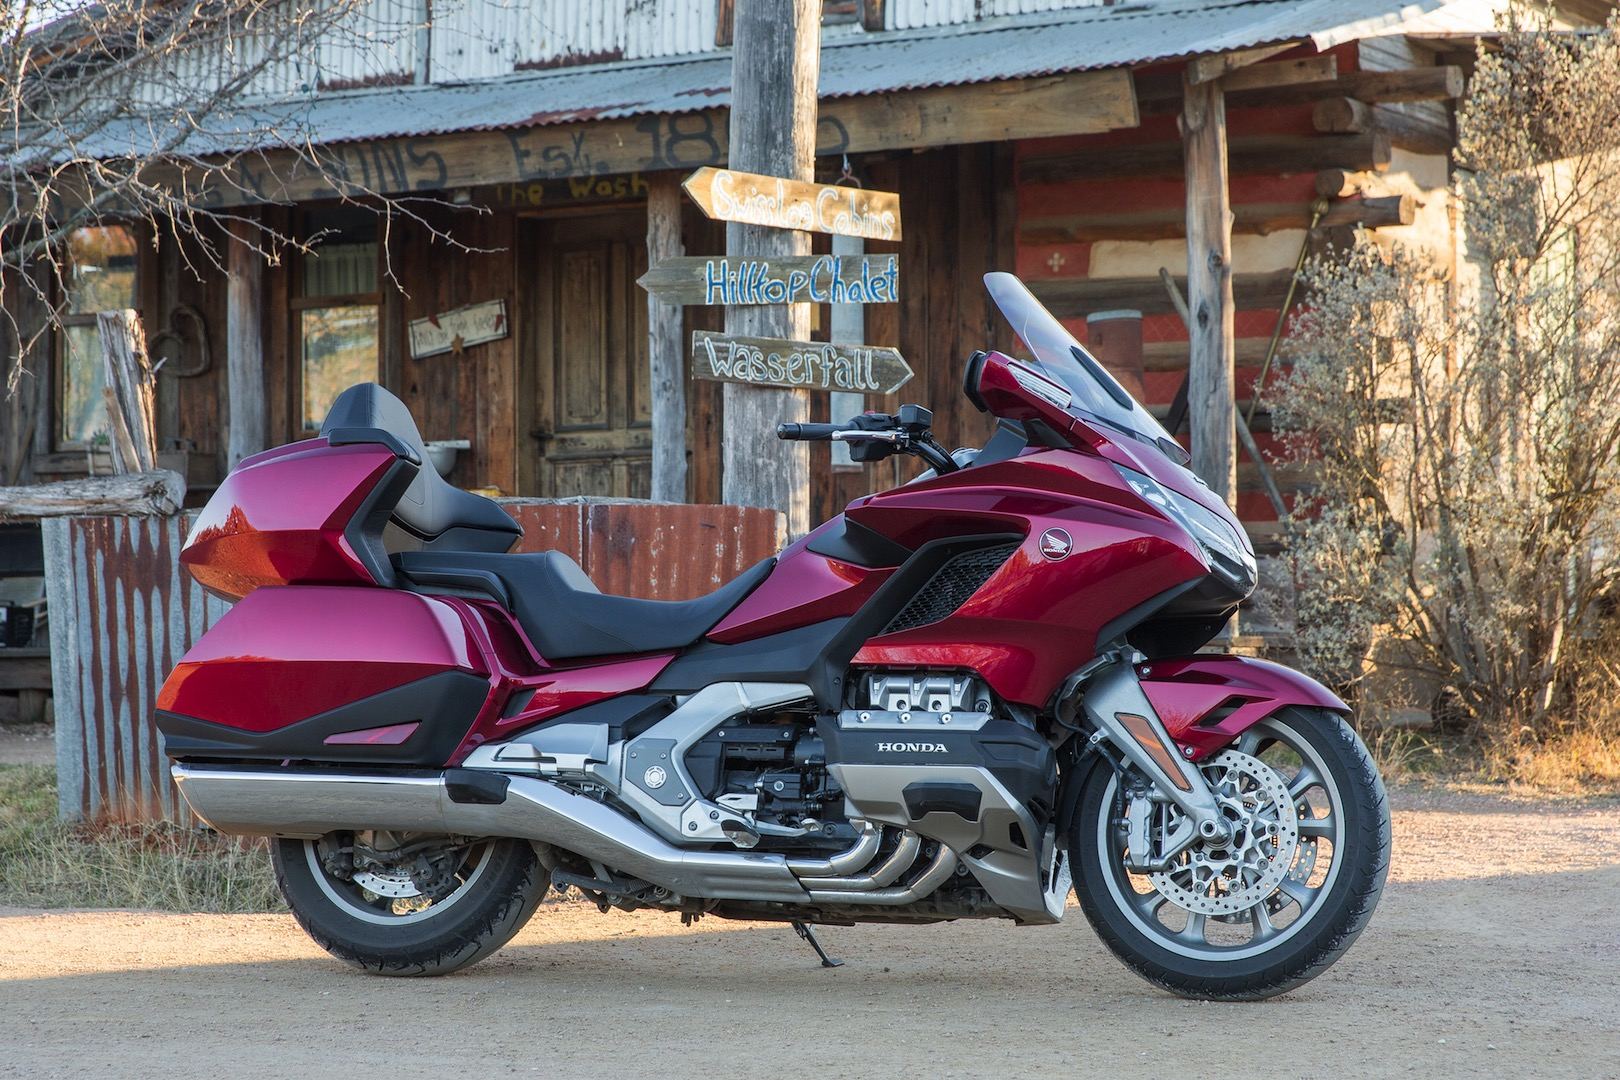 2018 honda gold wing tour dct review 34 fast facts 2018 honda gold wing tour dct review seat height fandeluxe Gallery